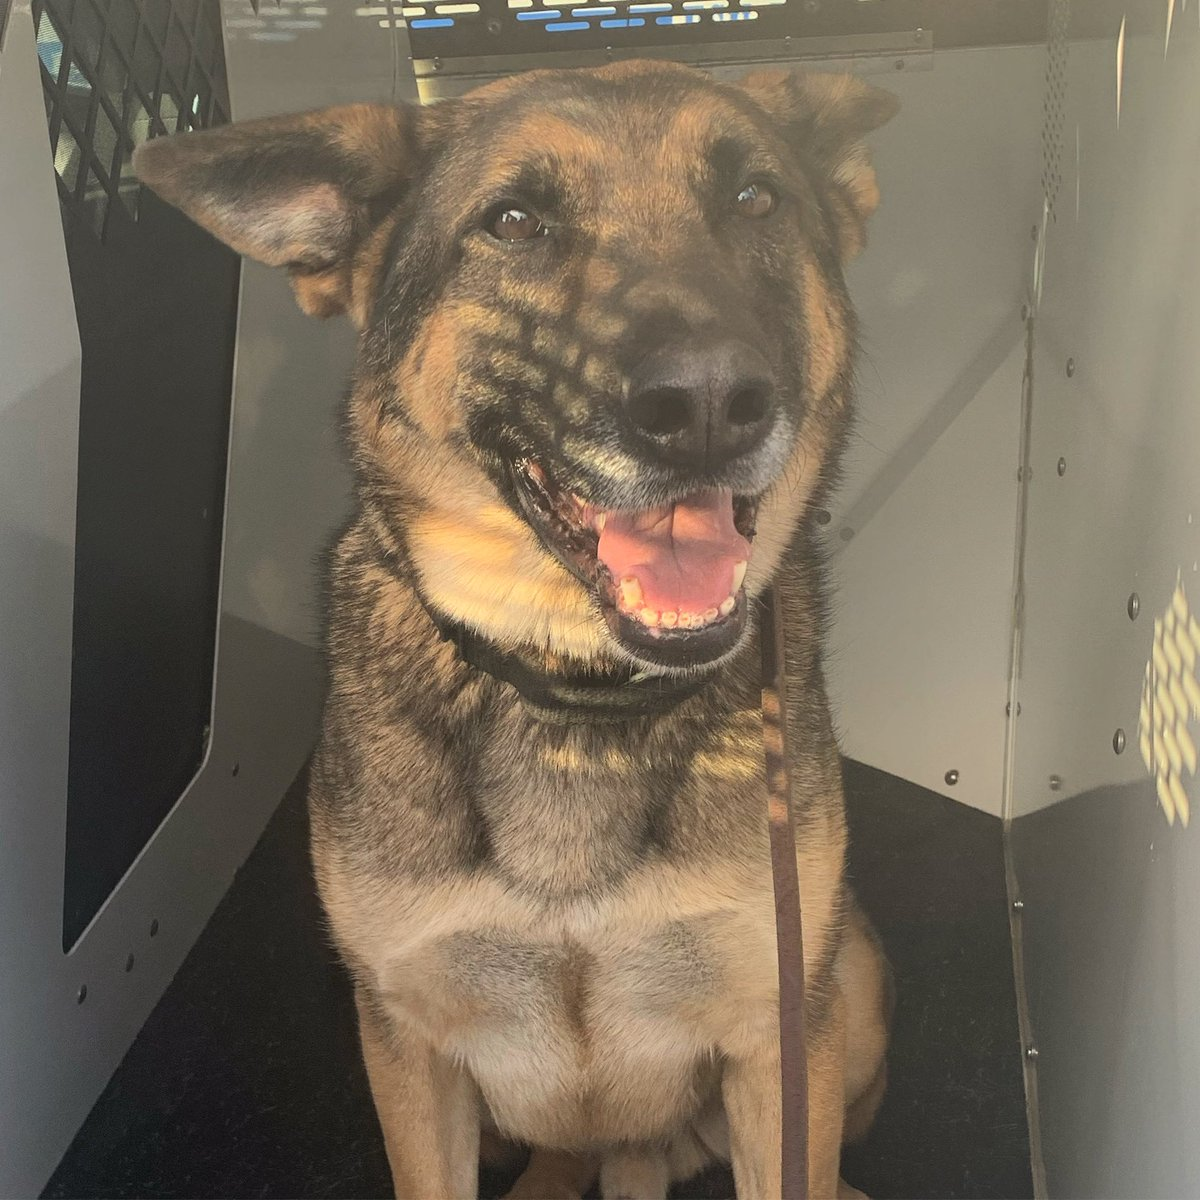 Someone was happy to be working a day shift. 🌞   #MondayMotivation #morningvibes #policek9 #policedog #LoveK9Louie #Smile